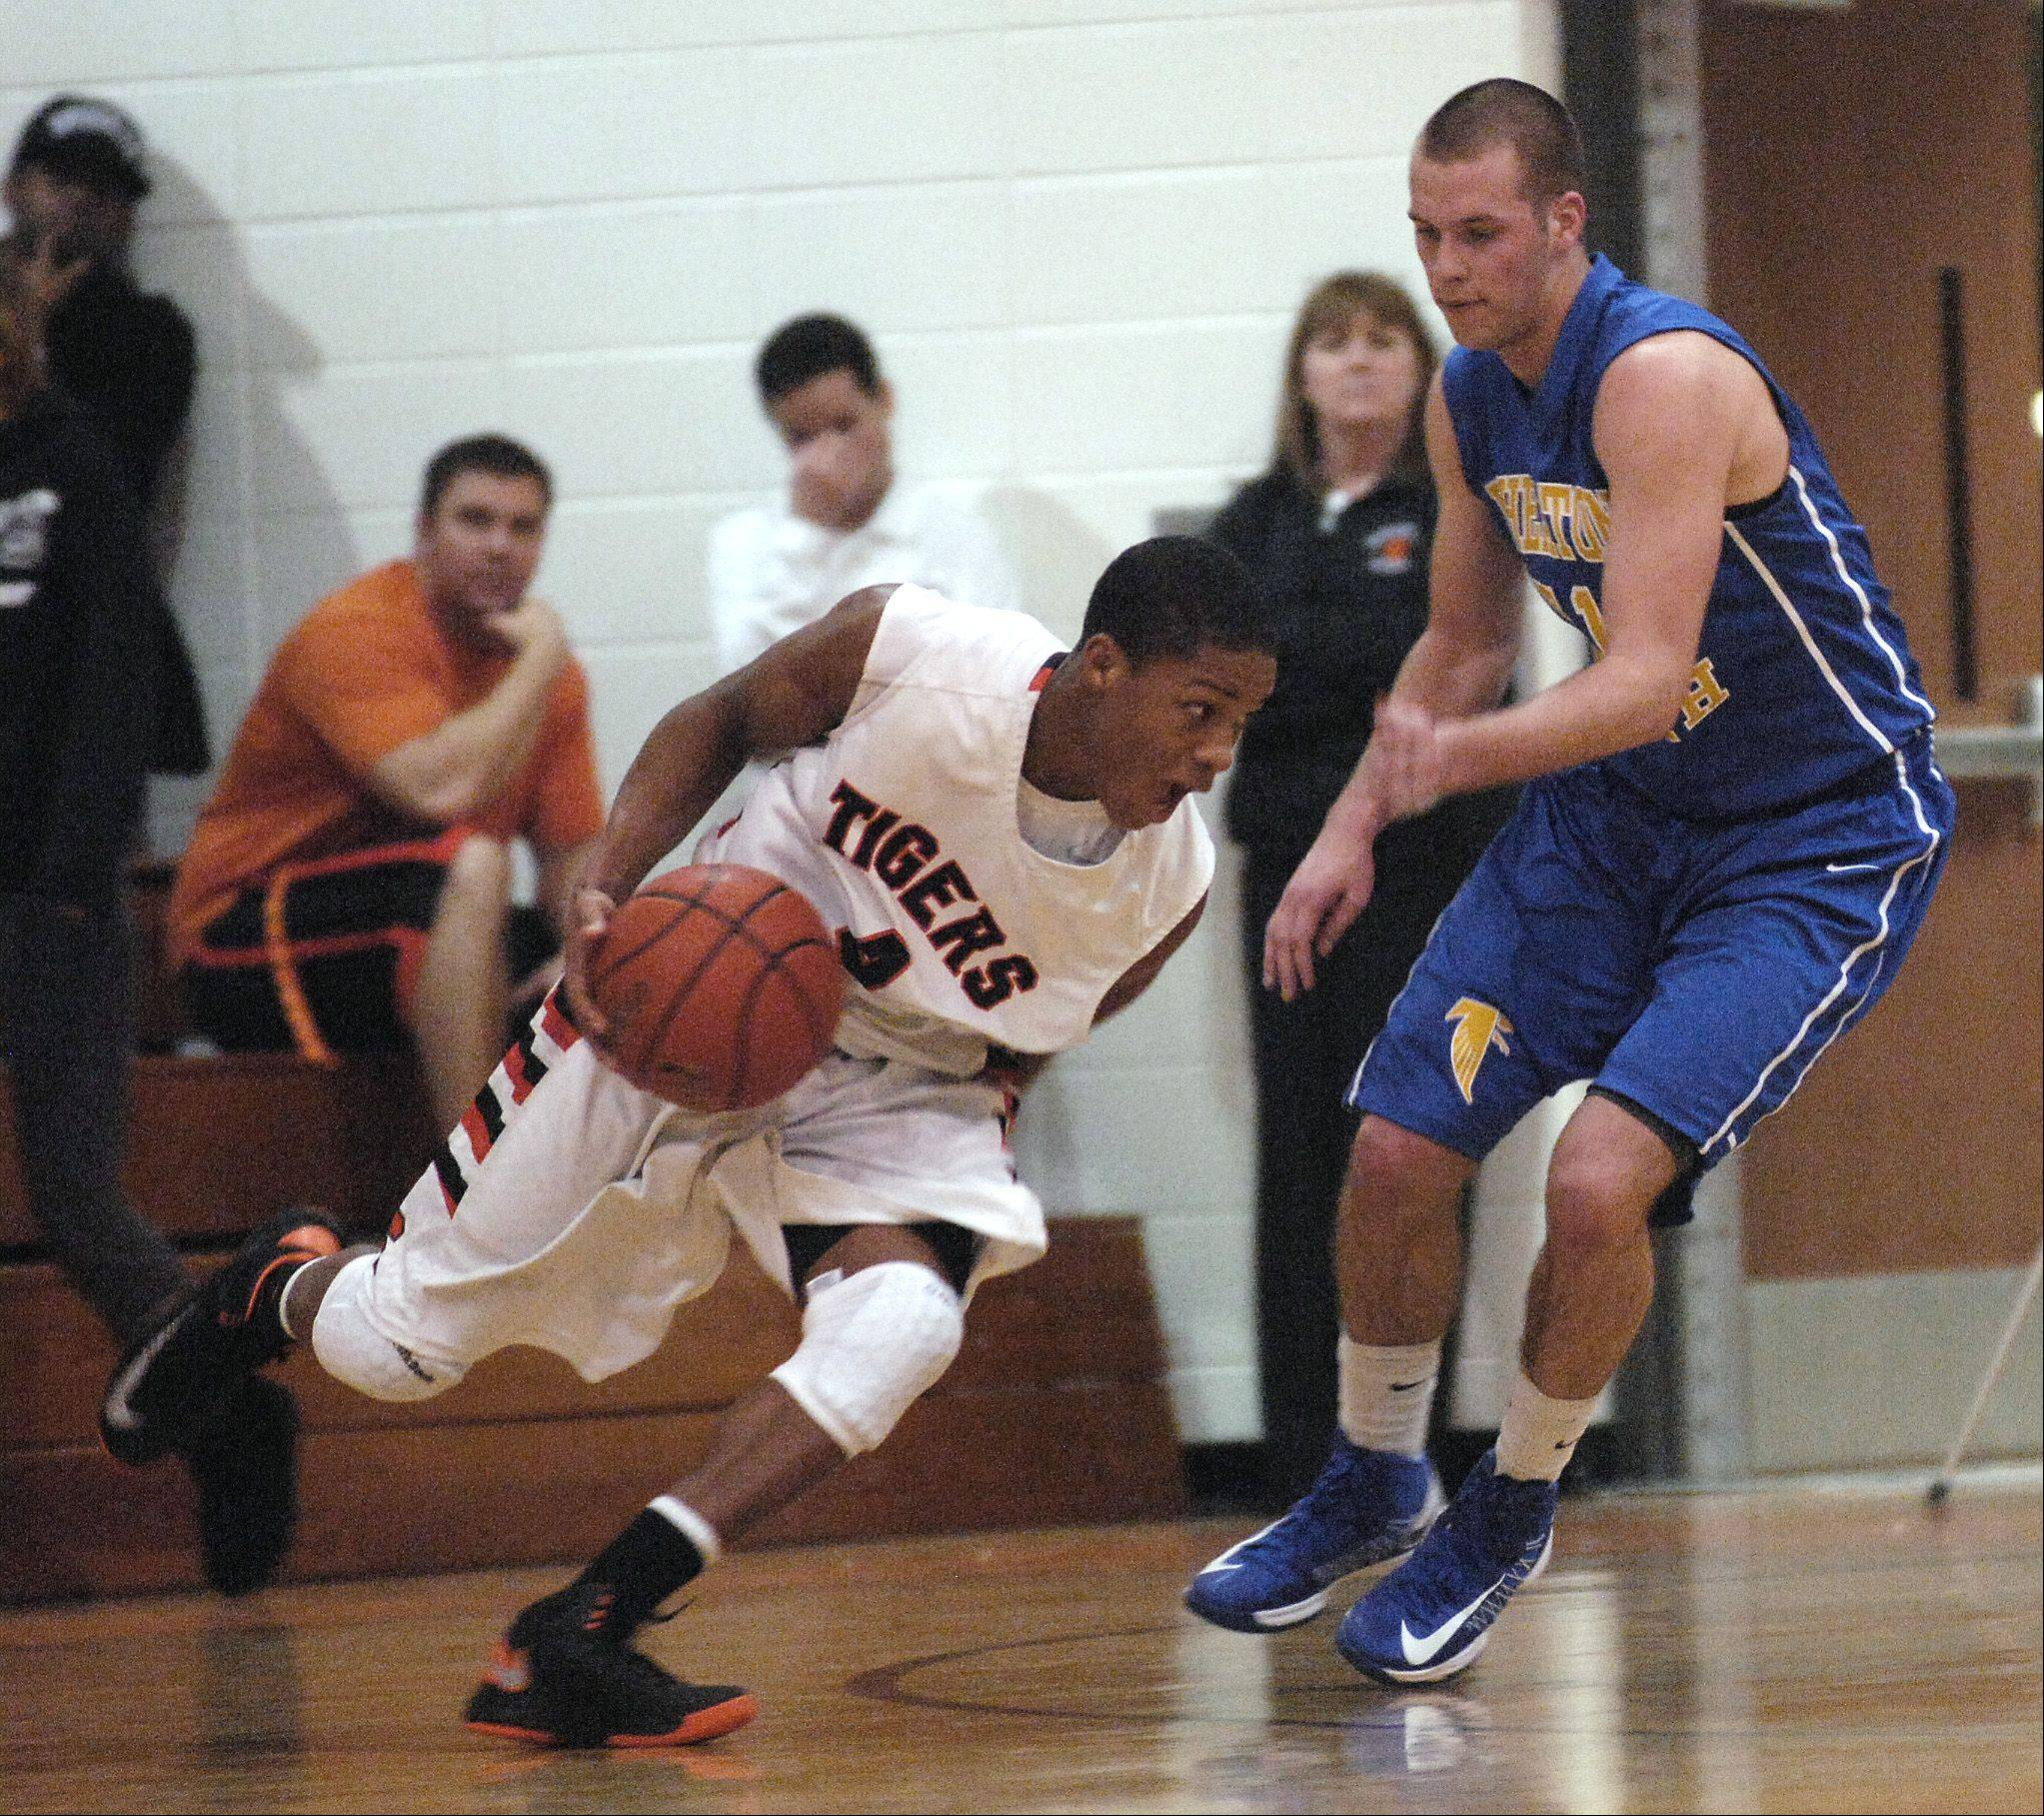 Keishawn Watson of Wheaton Warrenville South drives around Matt Biegalski of Wheaton North during boys basketball, Wednesday.